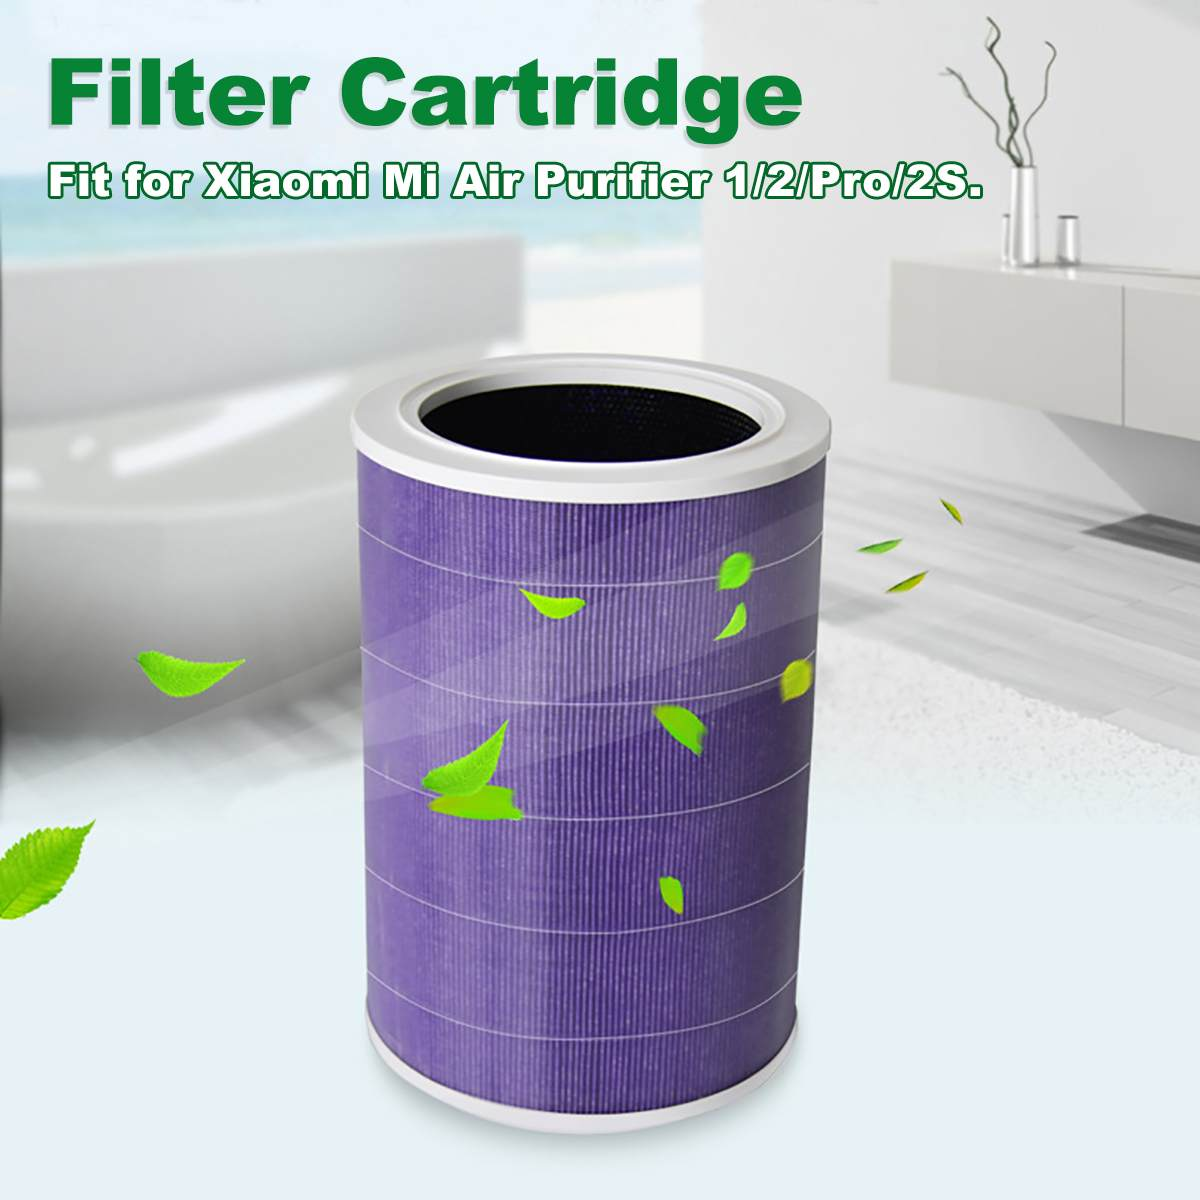 Air Purifier Filter Anti bacterial Pollution Cartridge Replacement Parts Accessories for Xiaomi Mi 1/2/Pro/2S Smart Air Purifier